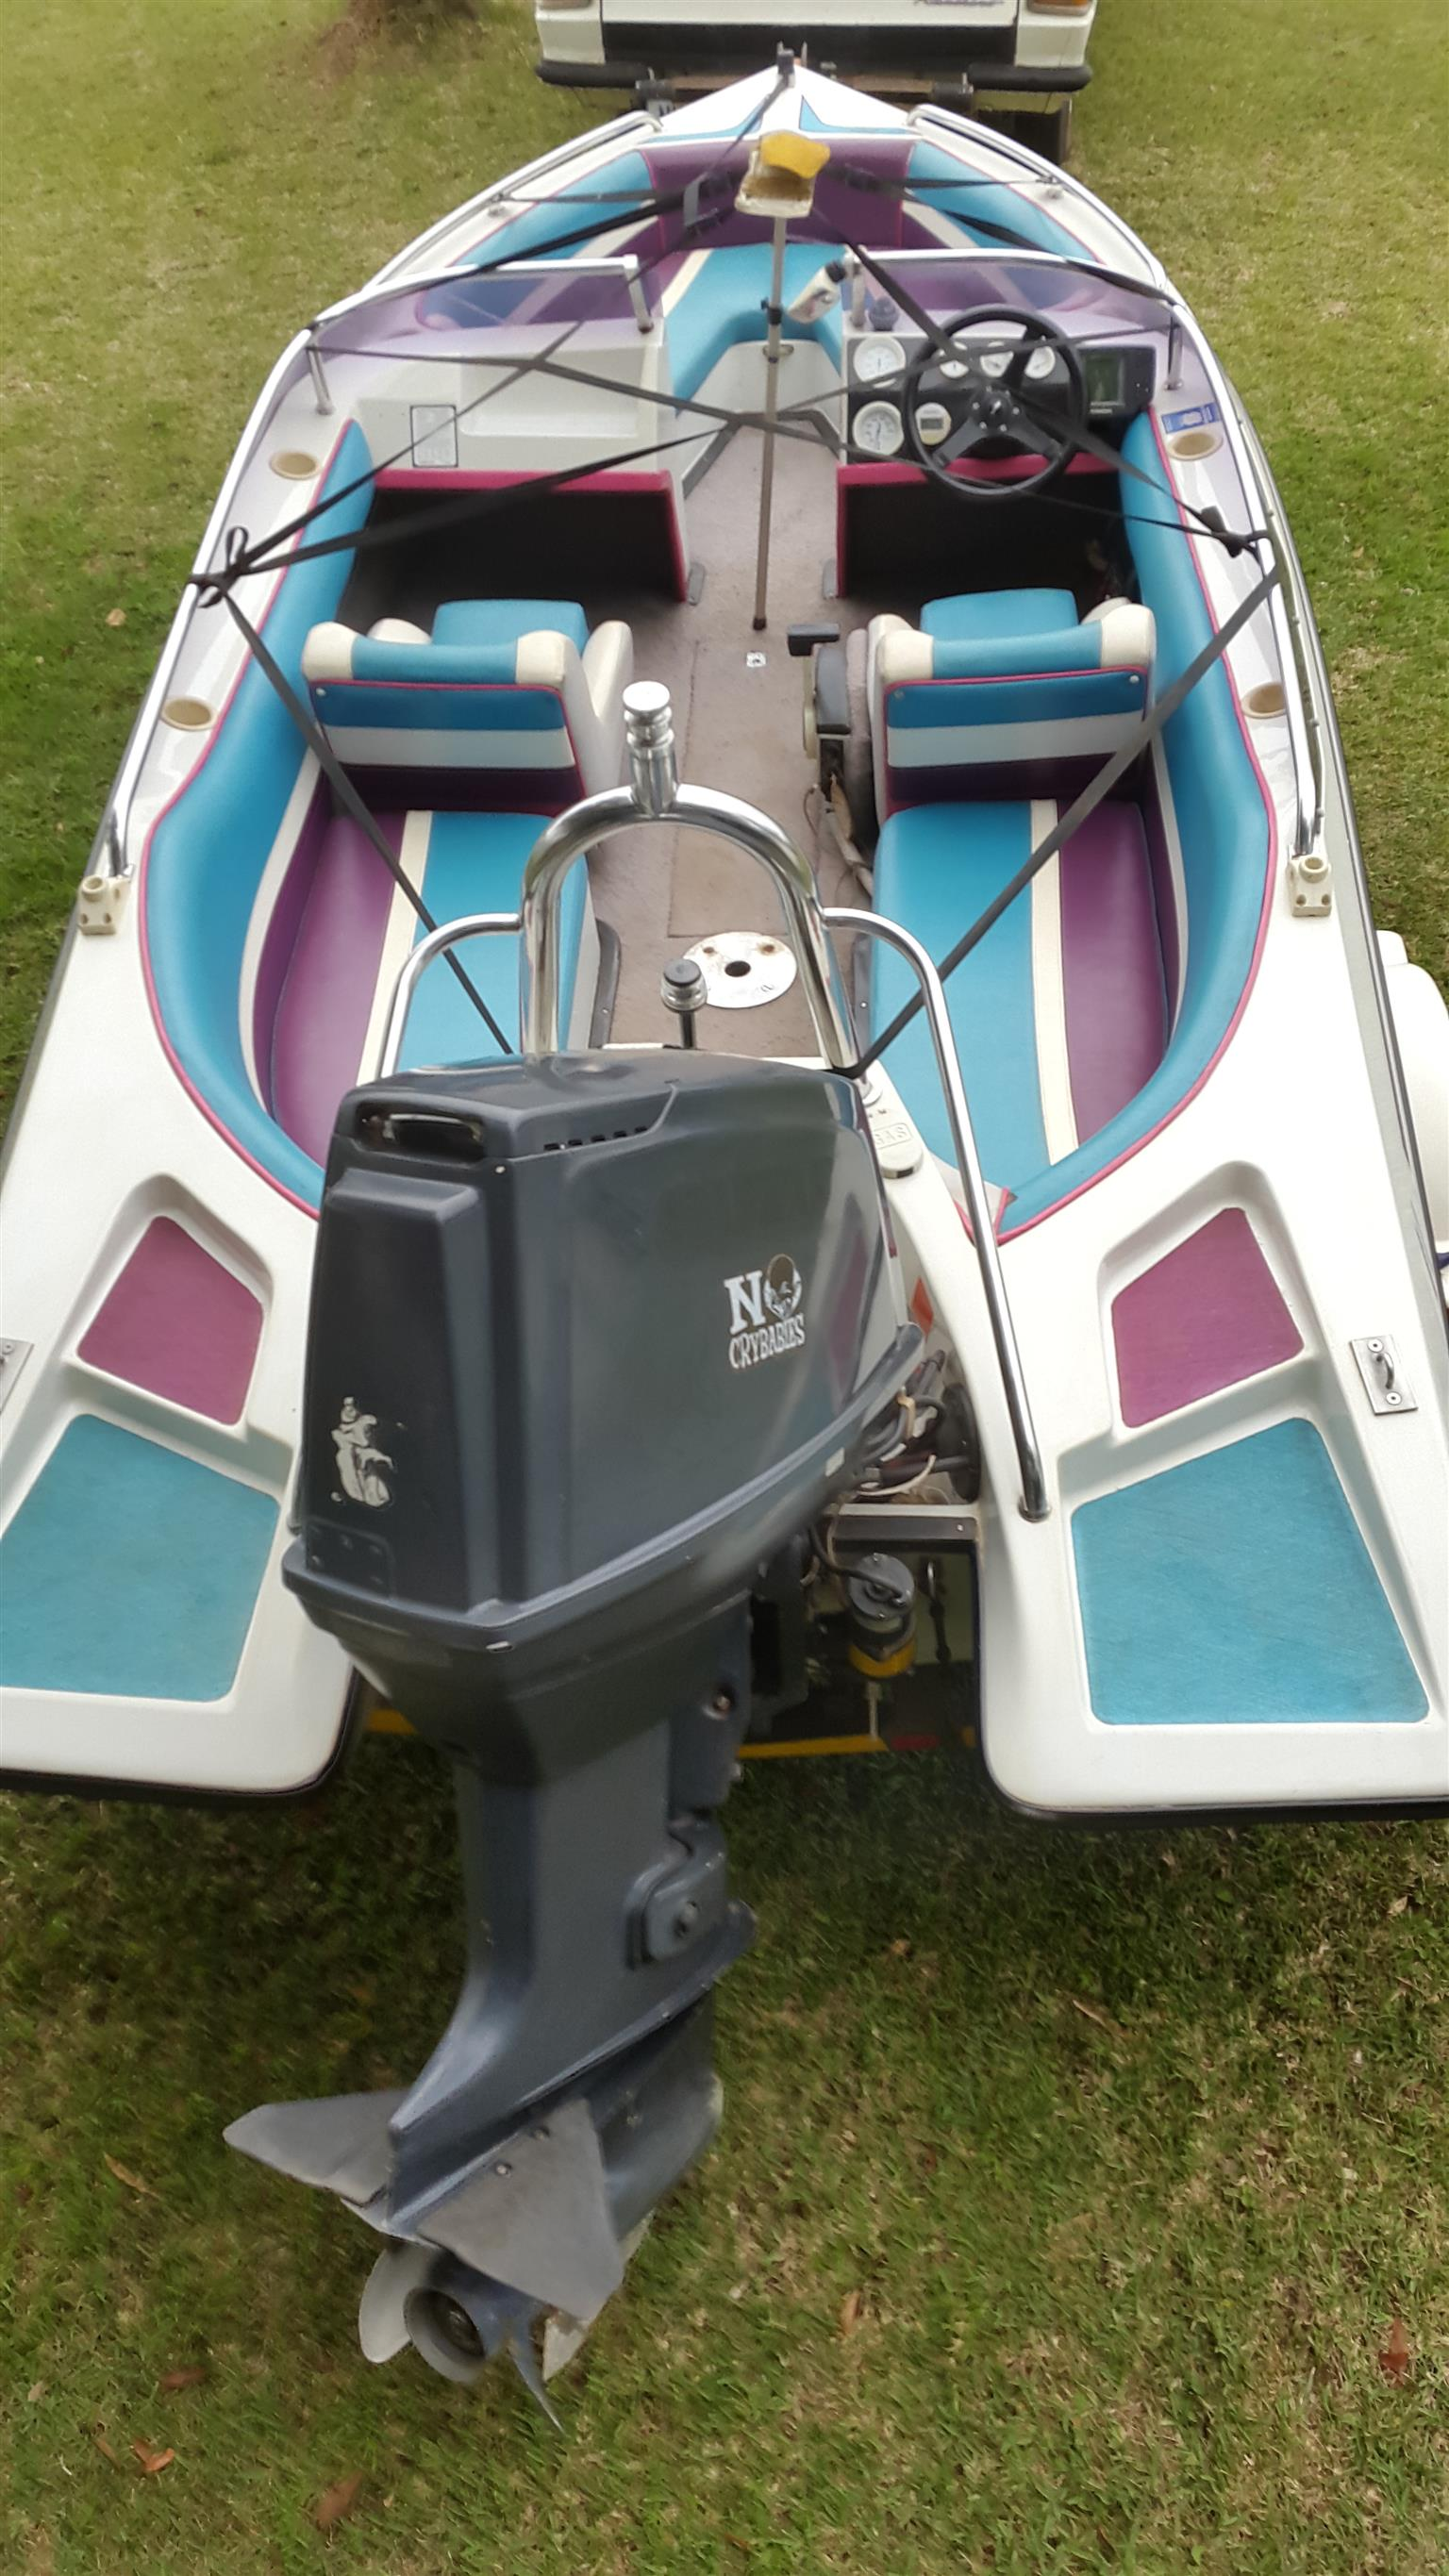 SPEED BOAT - Miami Sport 17 foot, strong 140 HP Suzuki great allround family boat.  SWOP/CASH OFFER